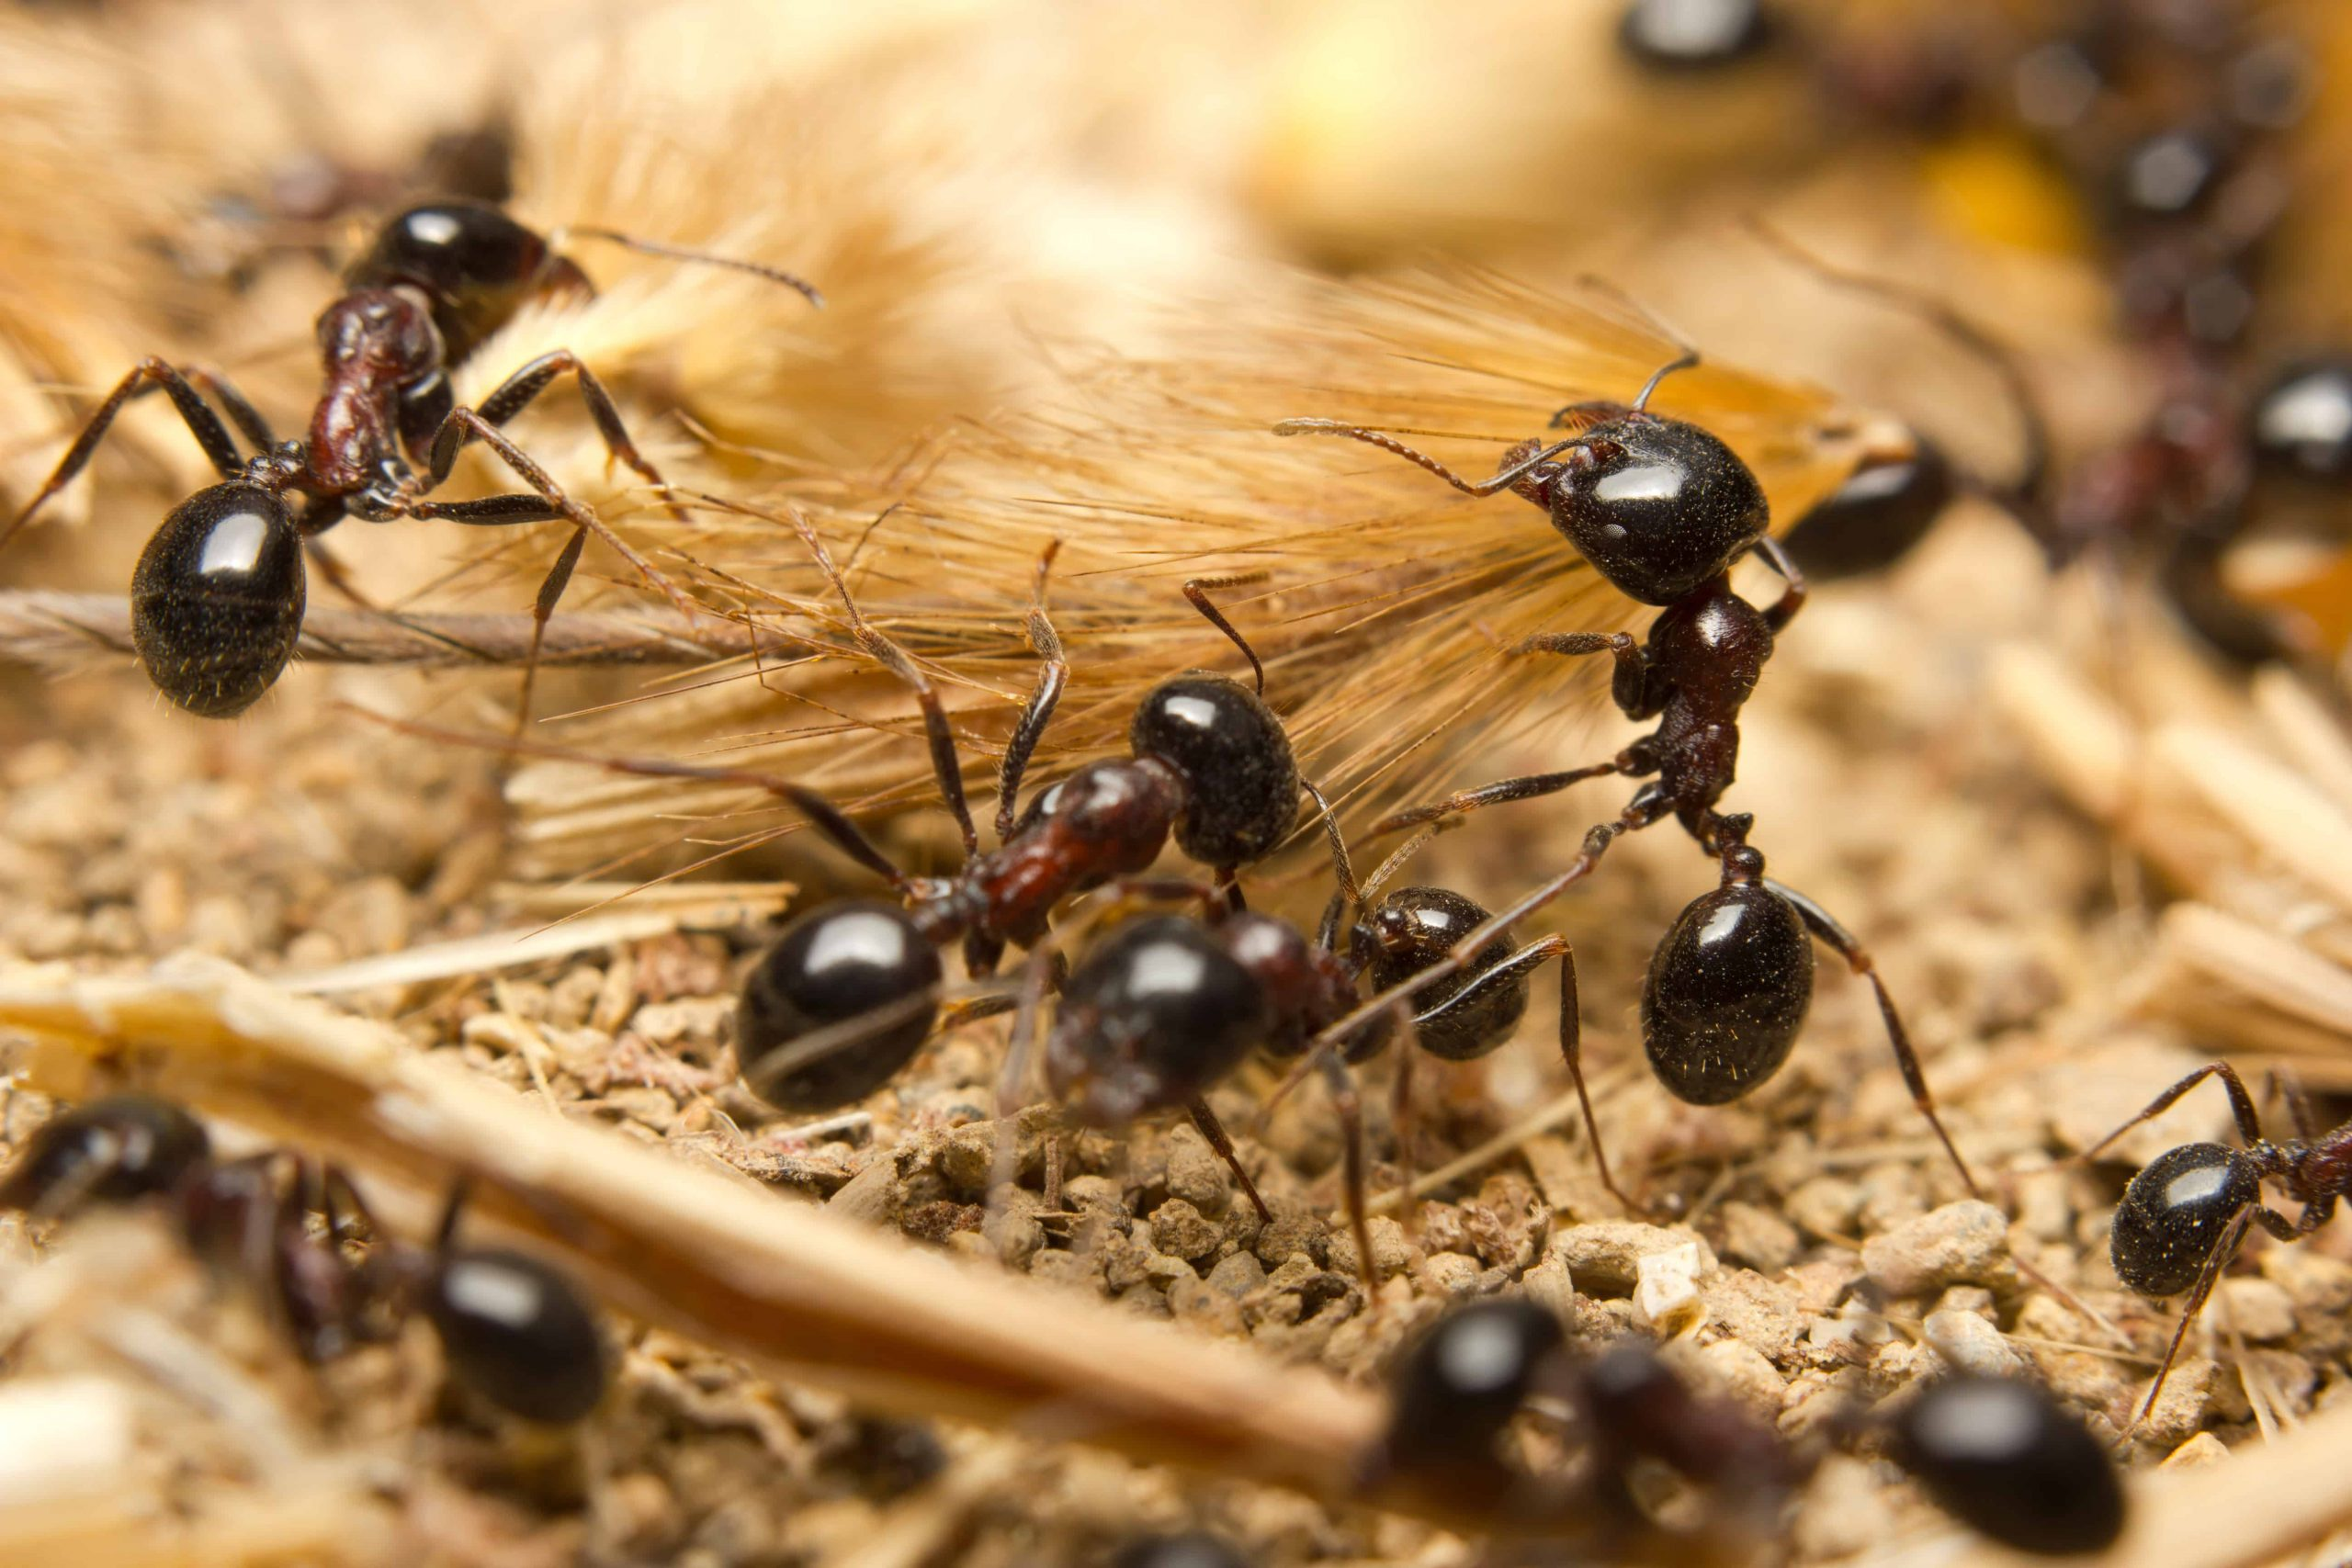 How To Eliminate Ants Without Killing Them